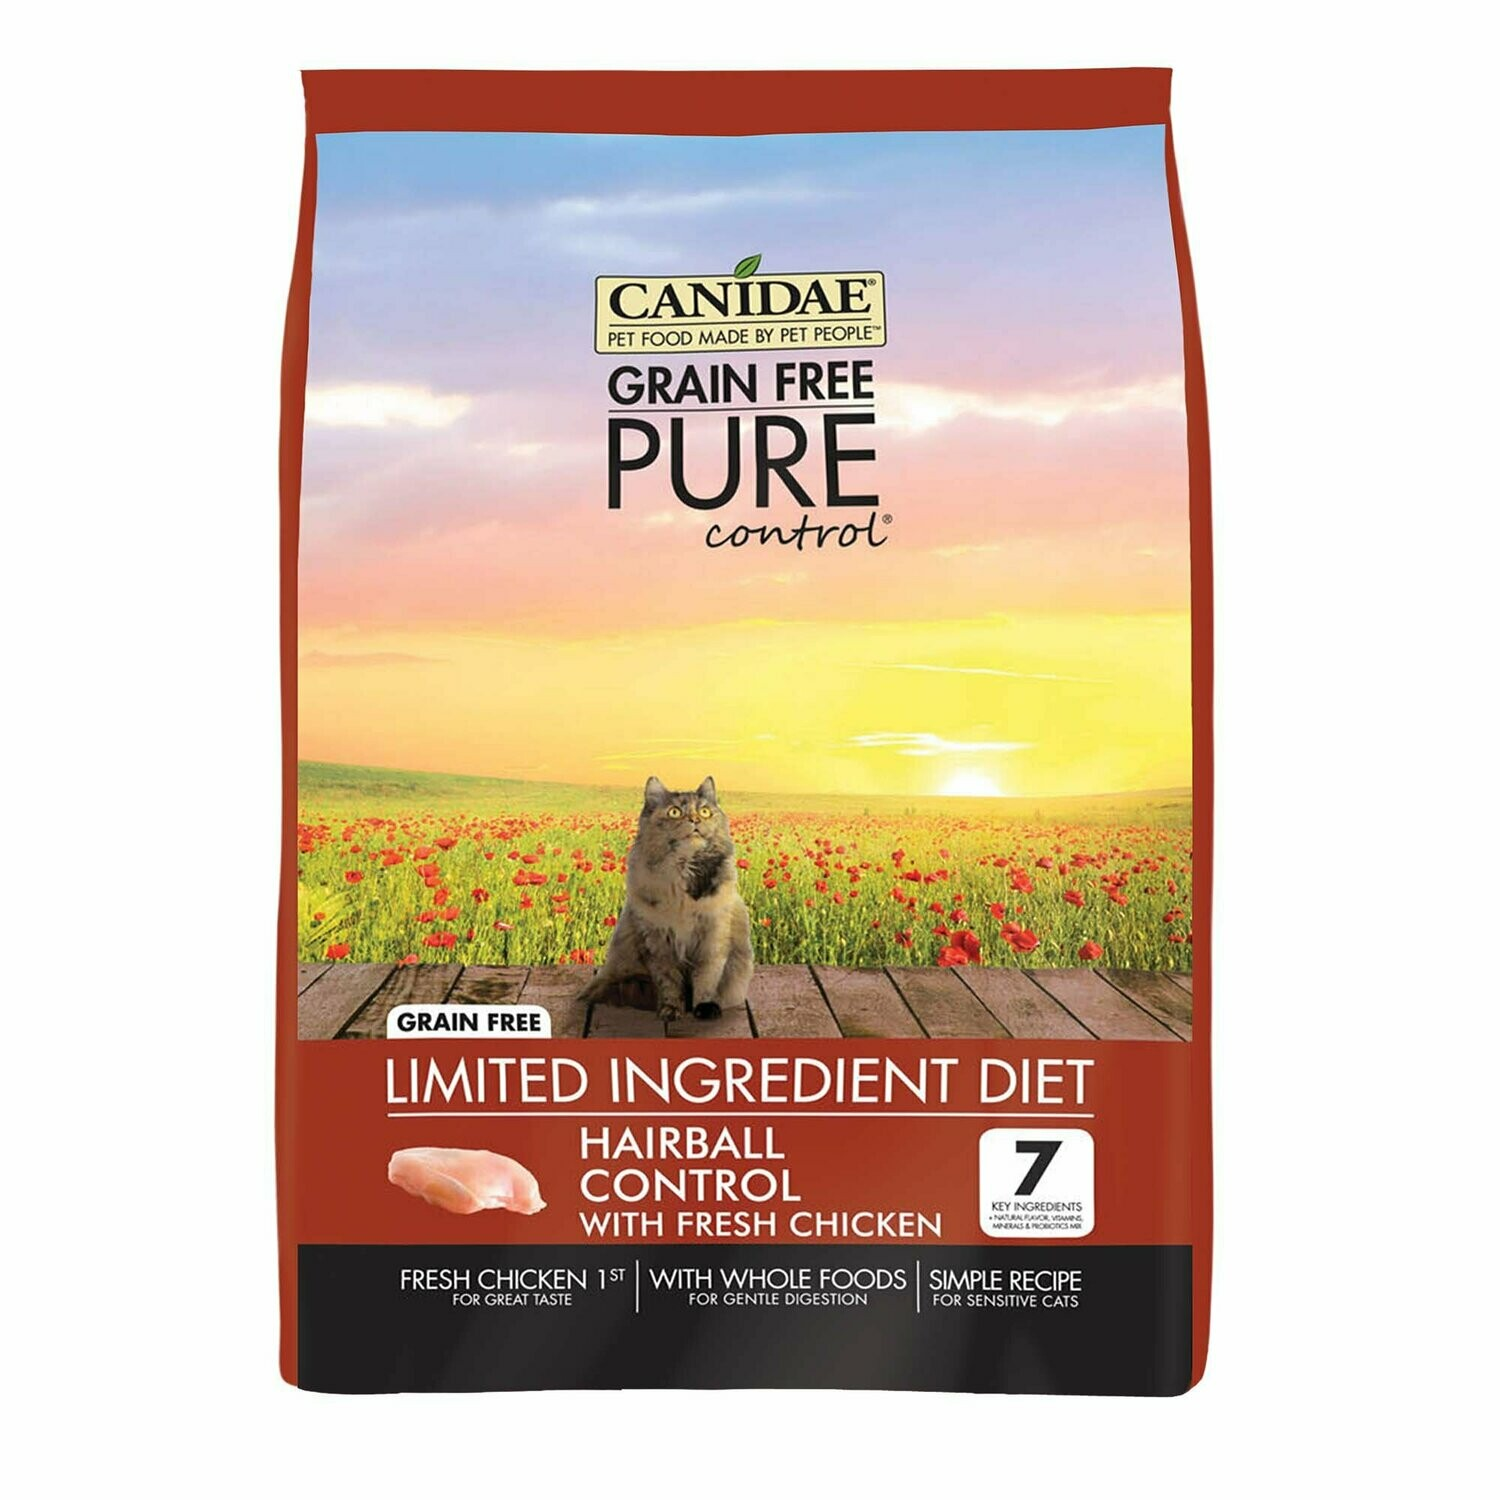 Canidae Pet Foods  Pure Grain Free Hairball Control Chicken Food 2.5 lbs (3/19) (A.O6)